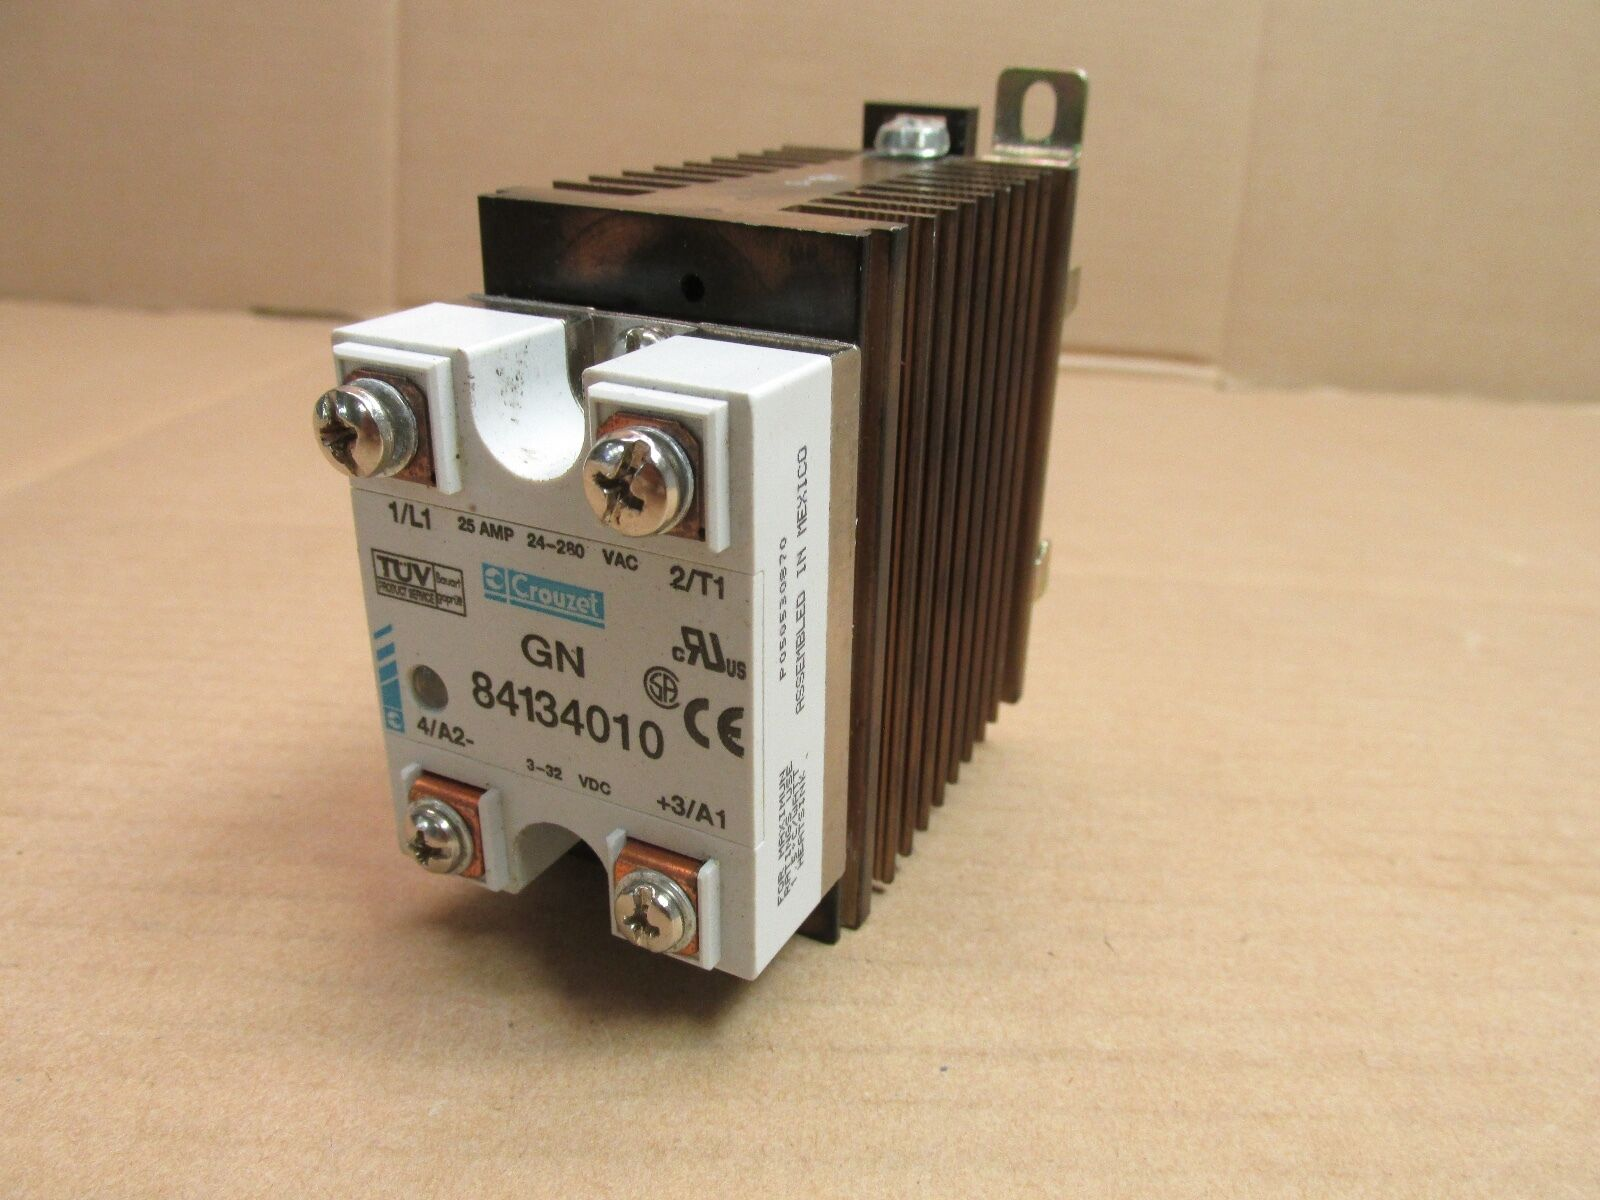 Crouzet Gn 84134010 Solid State Relay 25 Amp 24 280 Vac 3 32 Vdc Canada 1 Of 4only Available